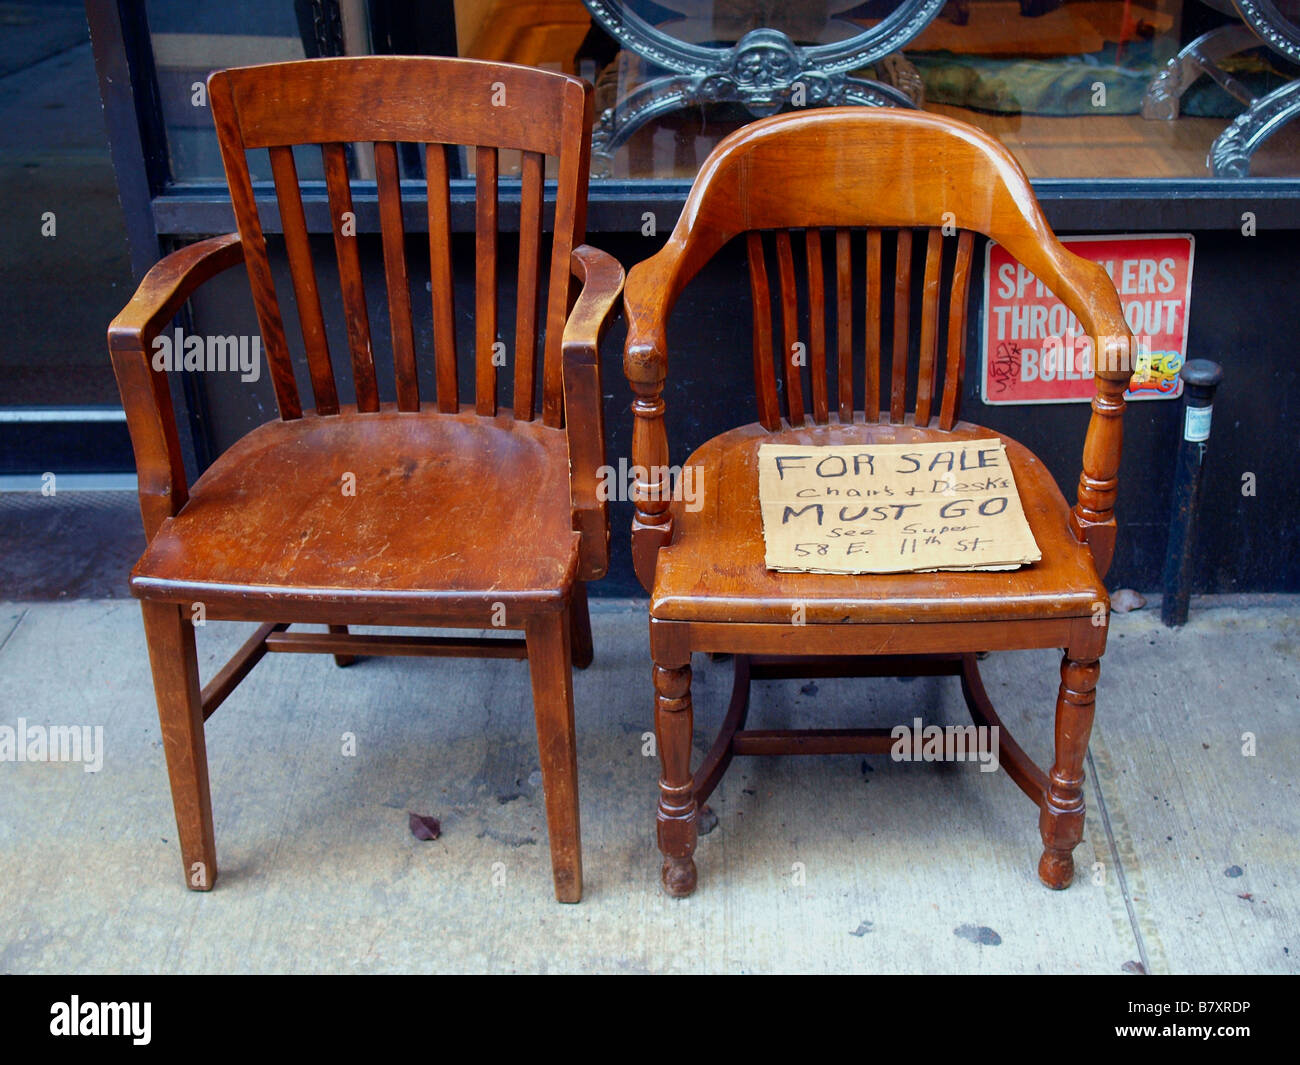 two old wooden chairs on a city sidewalk holding a handwritten stock